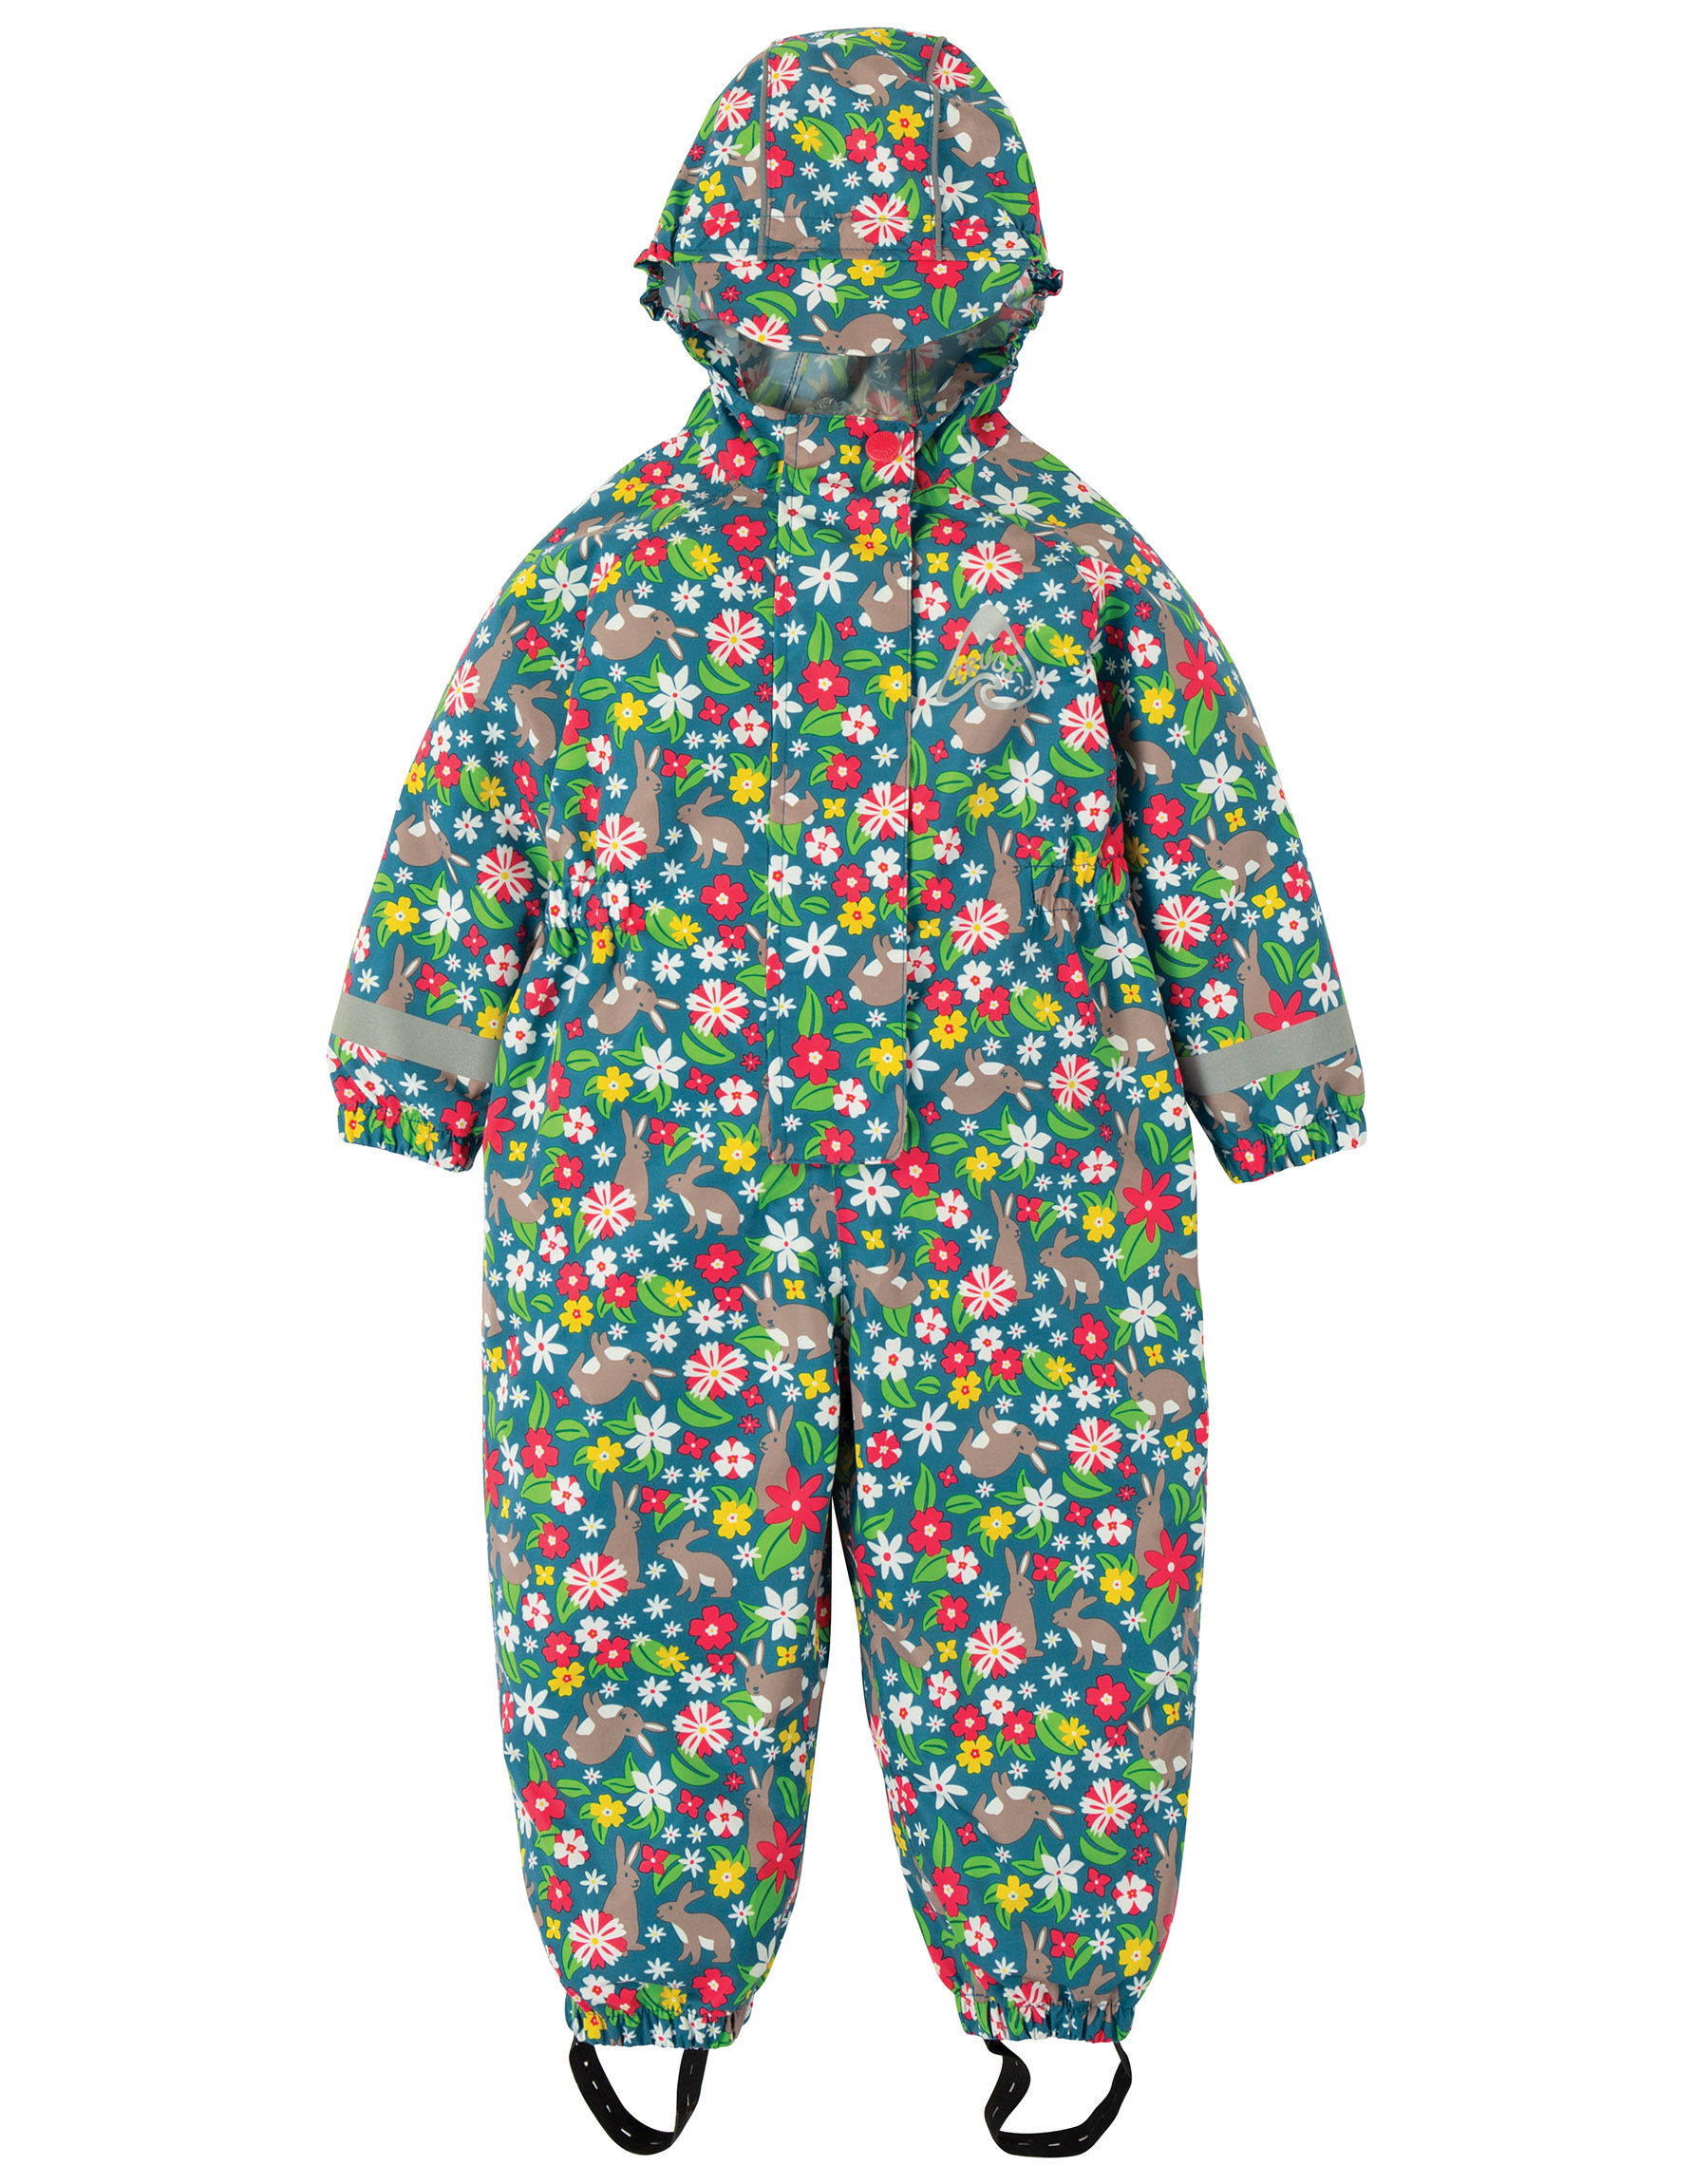 Frugi - Rain or Shine suit - Rabbit Fields